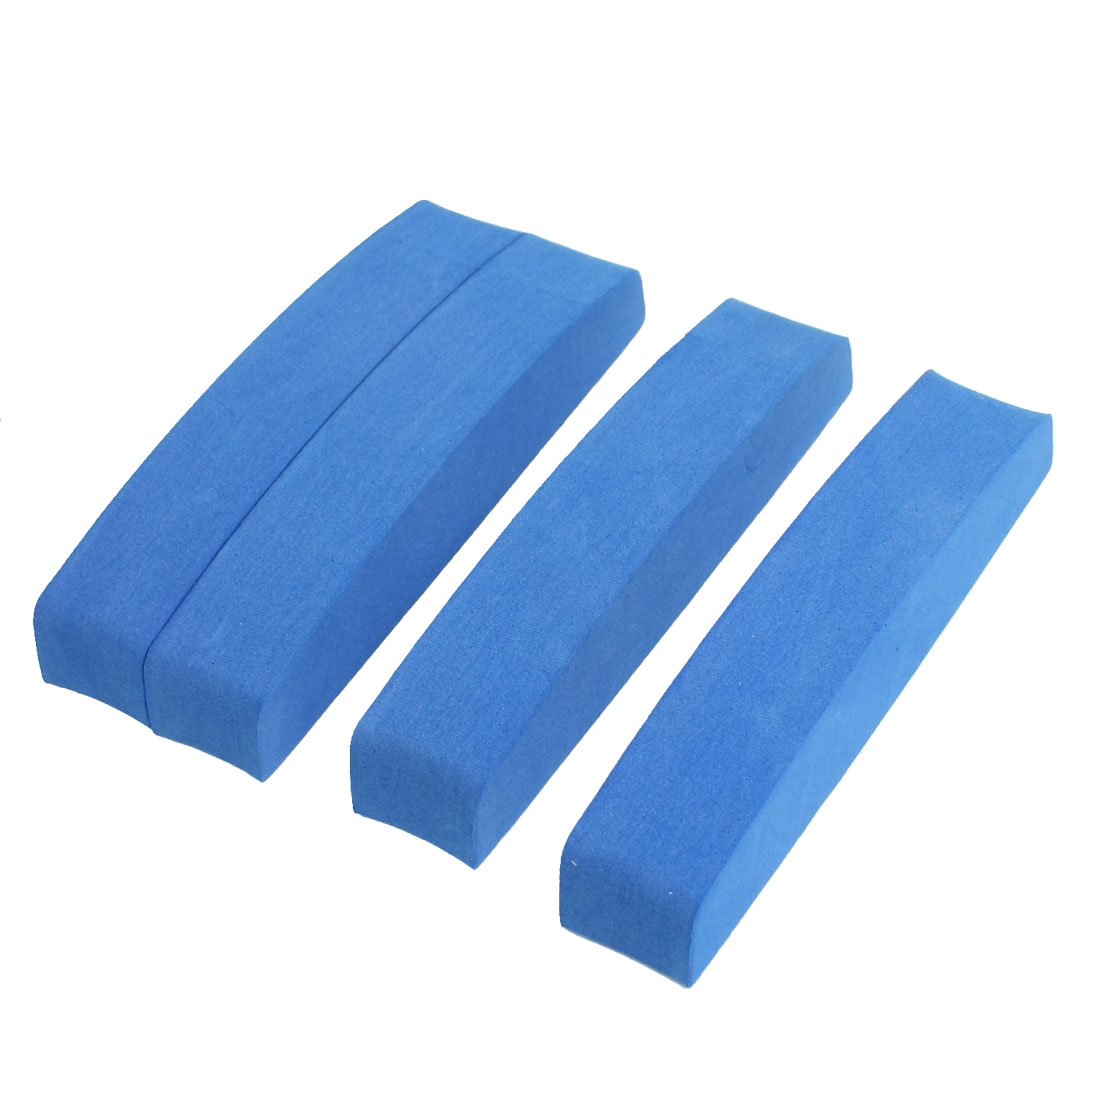 4 Pcs Blue Foam Adhesive Car Door Edge Guard Bumper Protector Sticker